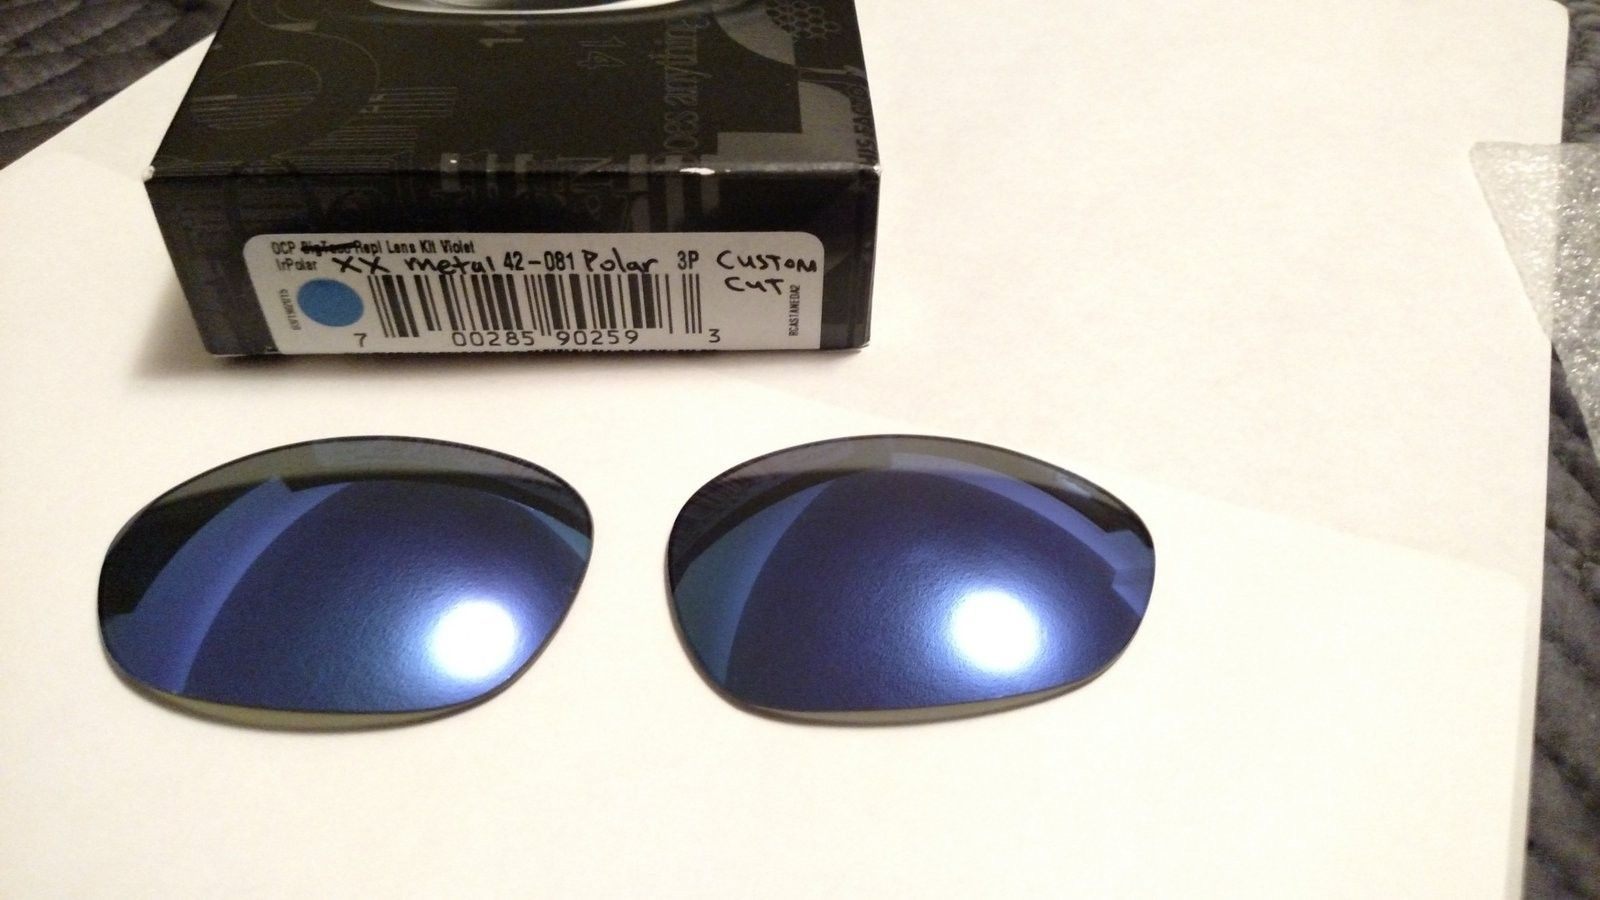 fdd8a560ad0 Custom Cut Oakley Lenses Nz. Oakley Lens Custom Cut « Heritage Malta